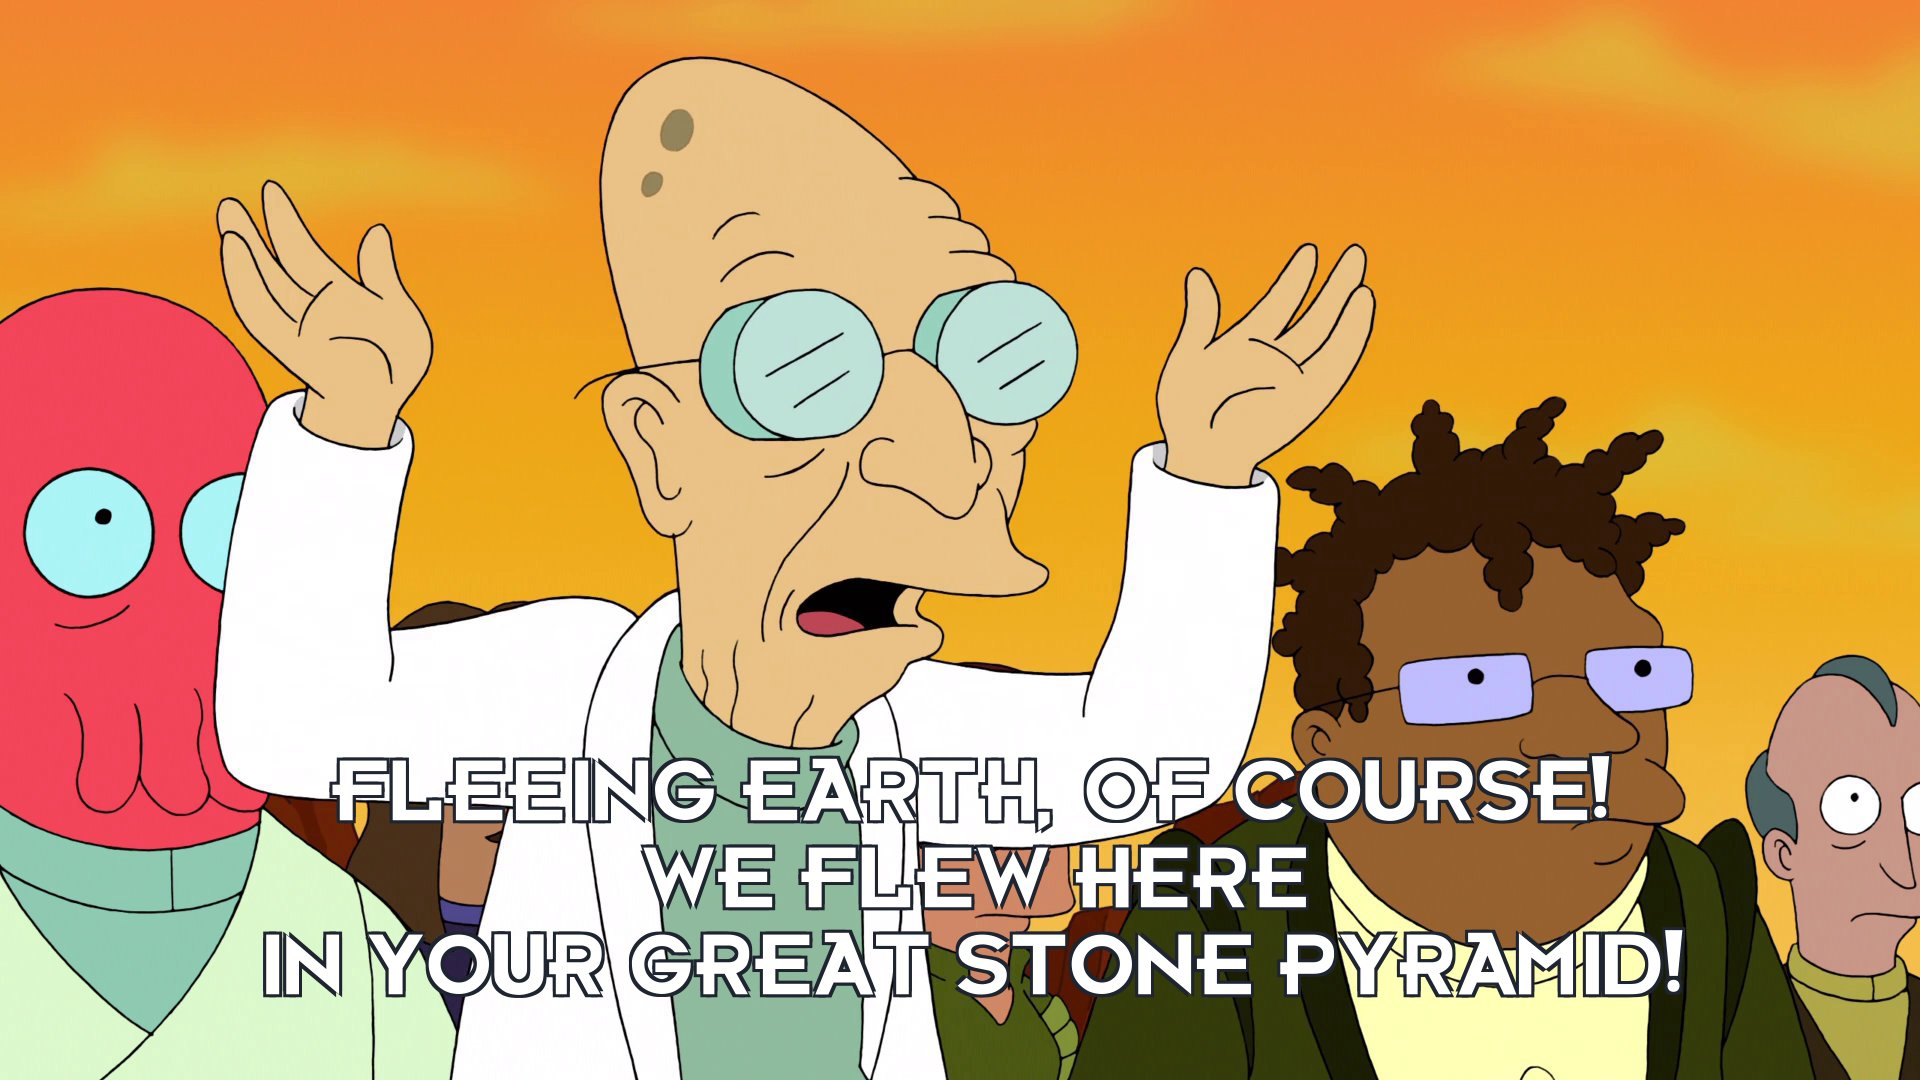 Prof Hubert J Farnsworth: Fleeing Earth, of course! We flew here in your great stone pyramid!